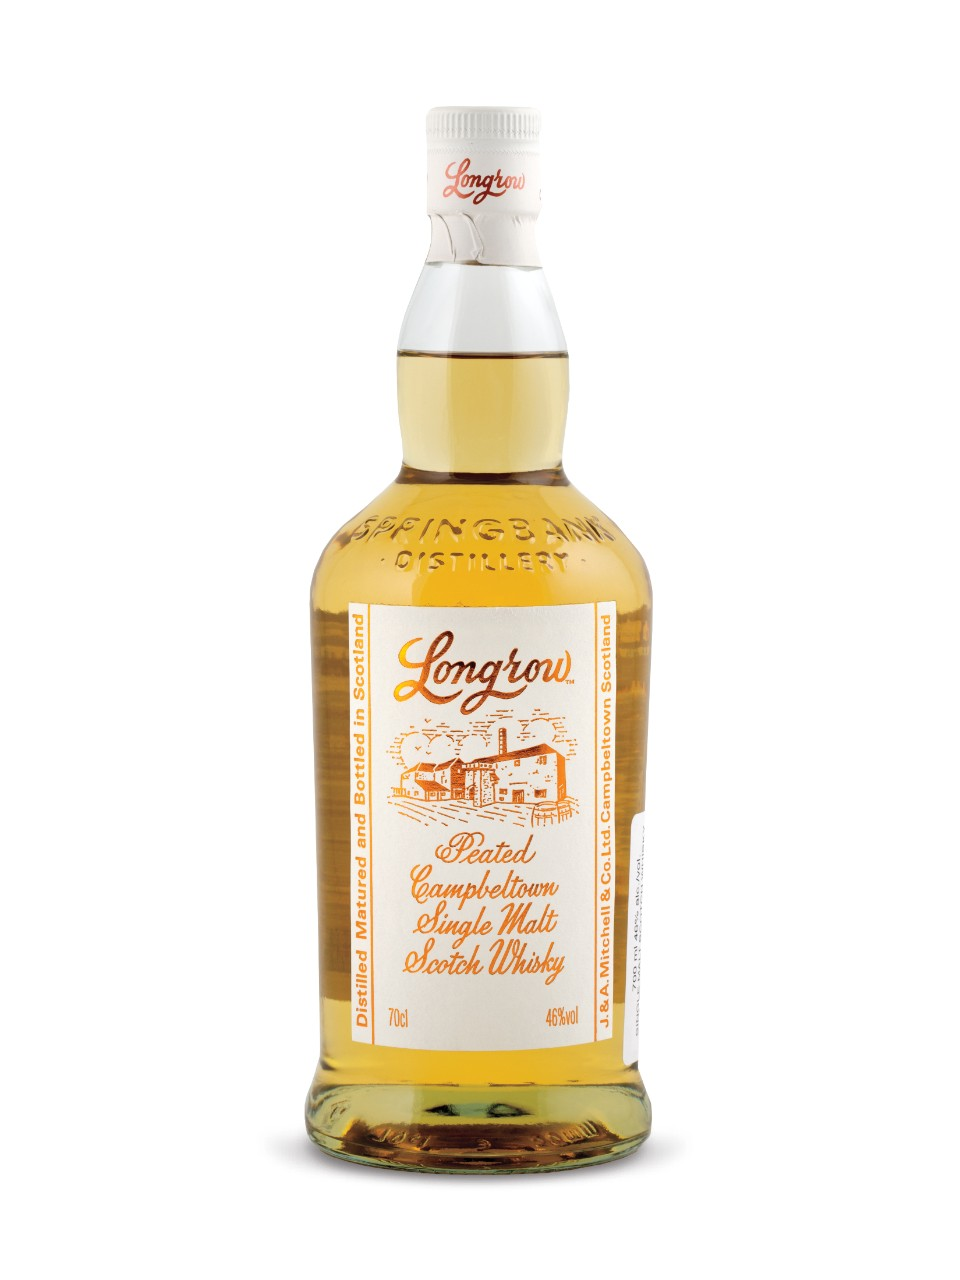 Longrow Peated Campbeltown Single Malt Scotch Whisky from LCBO